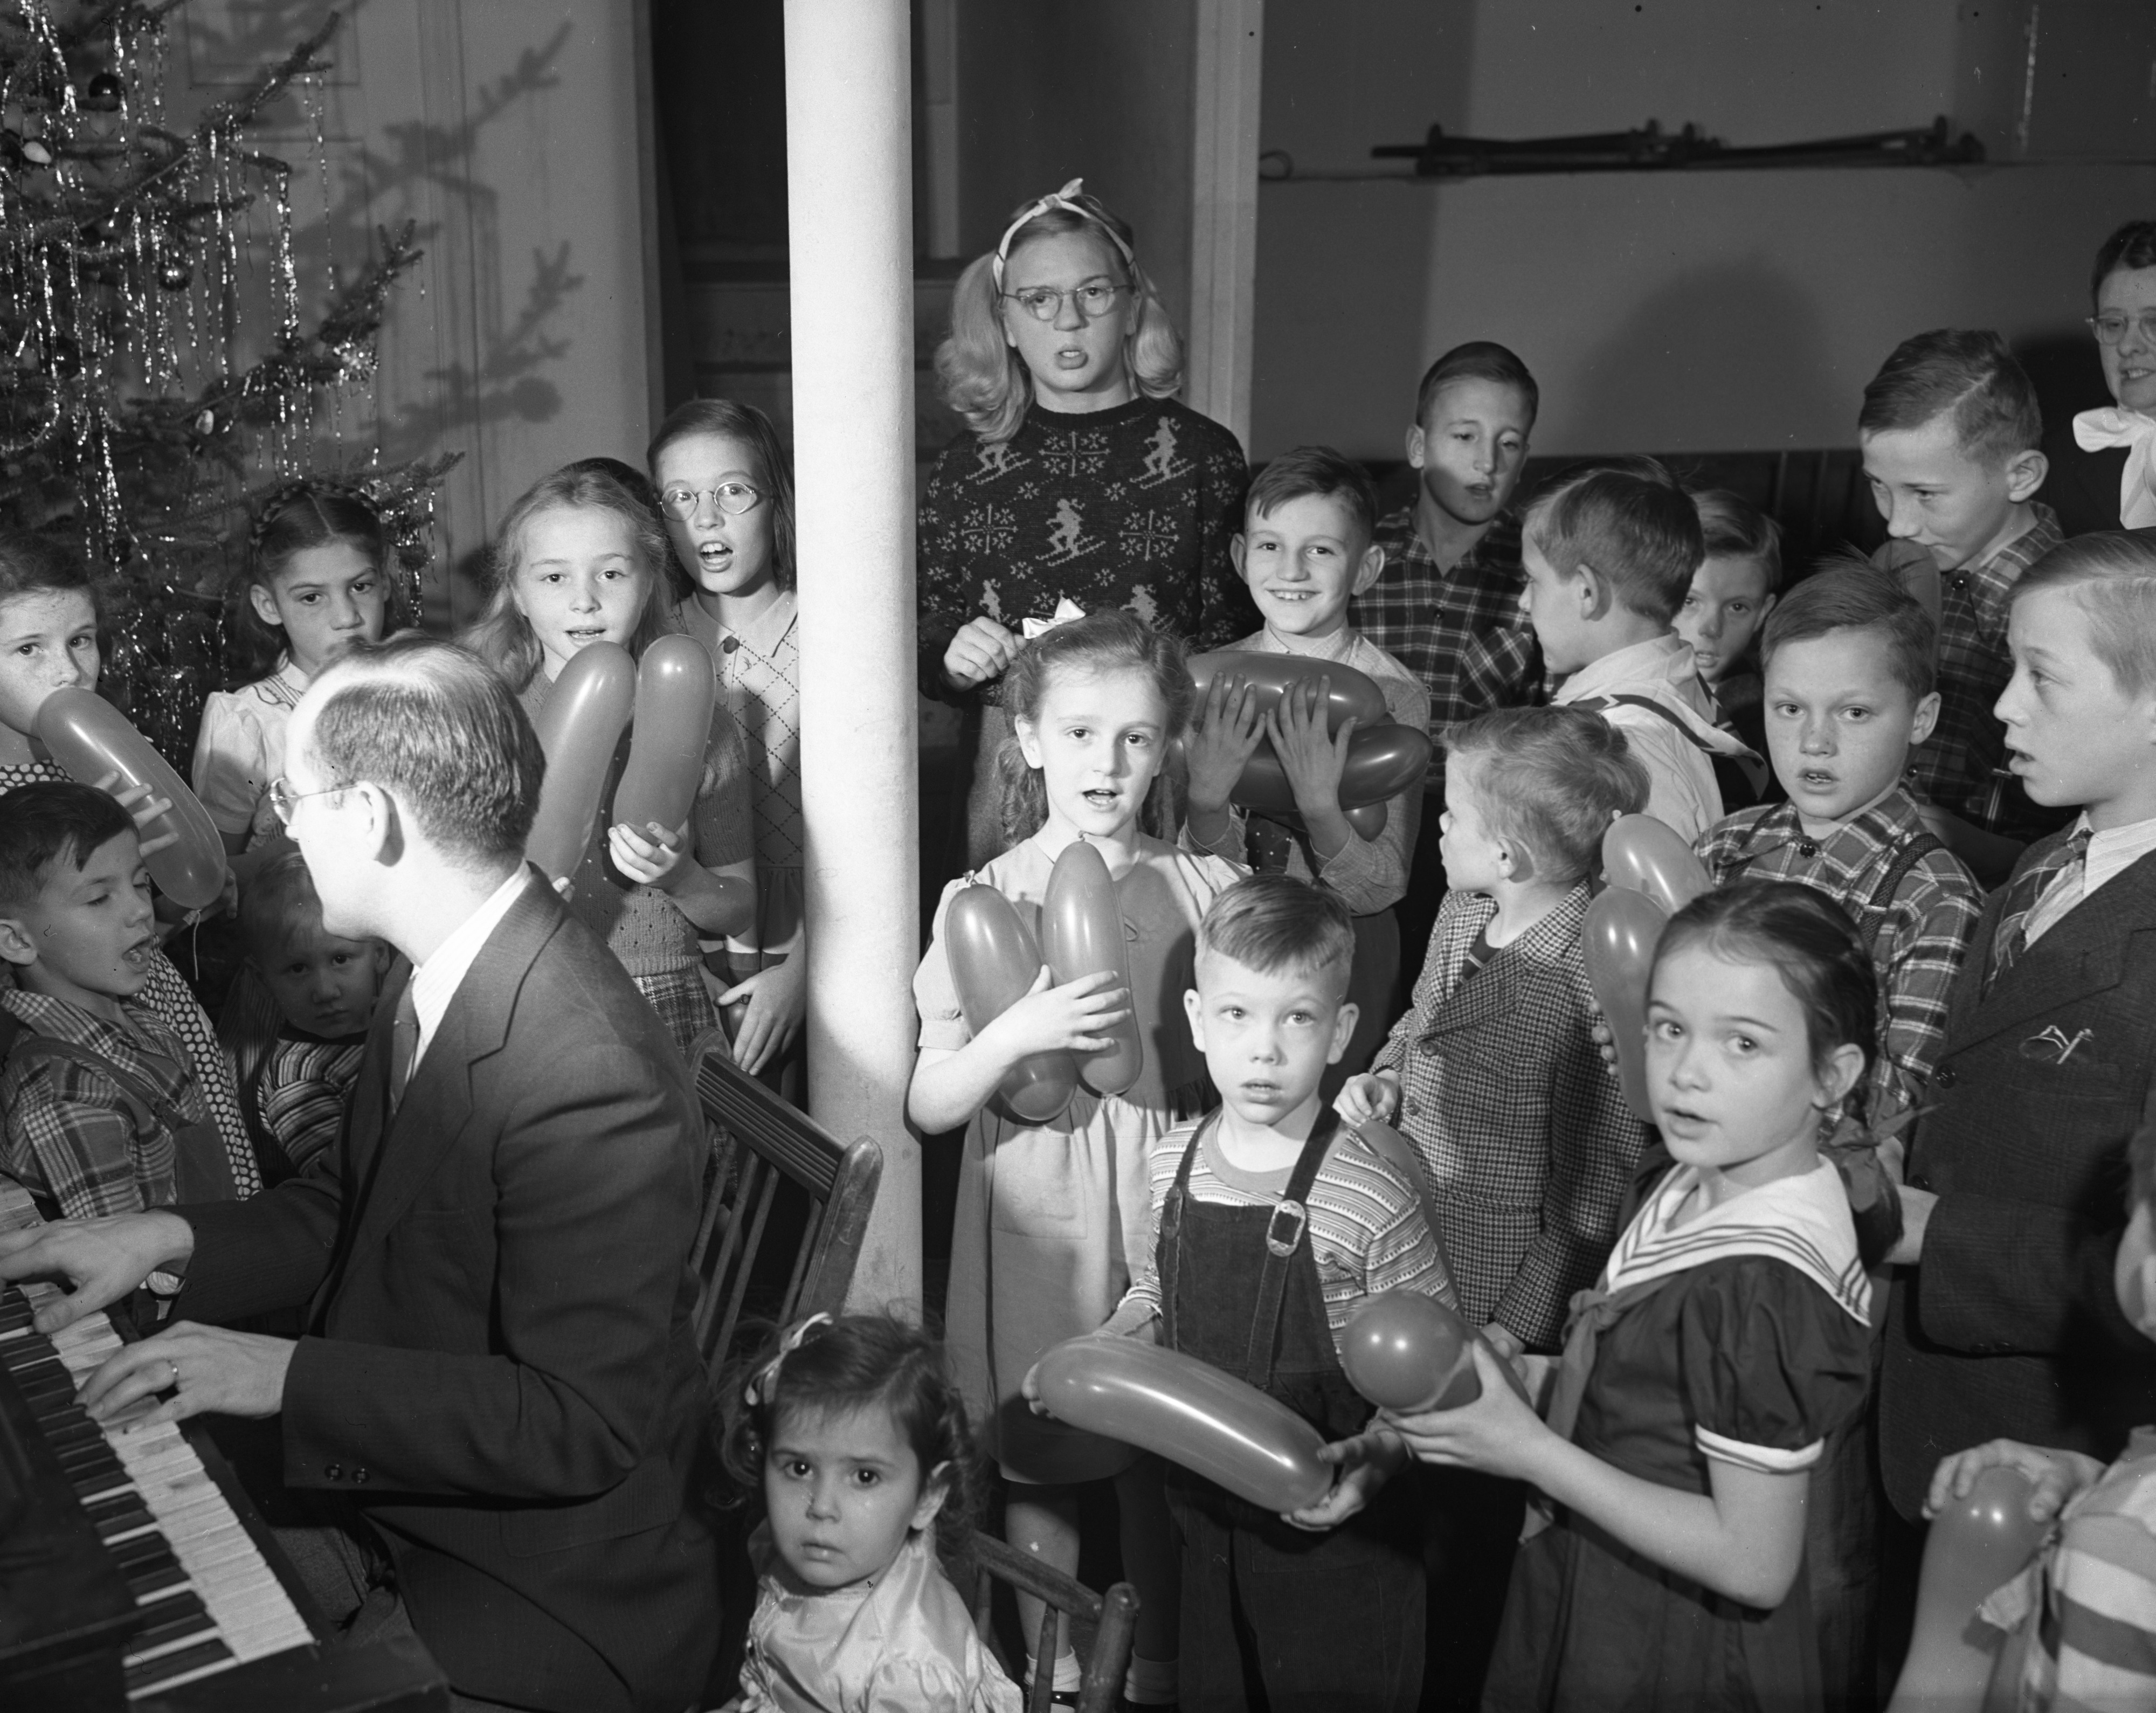 Dixboro Church Christmas Party for wards of the Michigan Children's Aid Society, December 1947 image